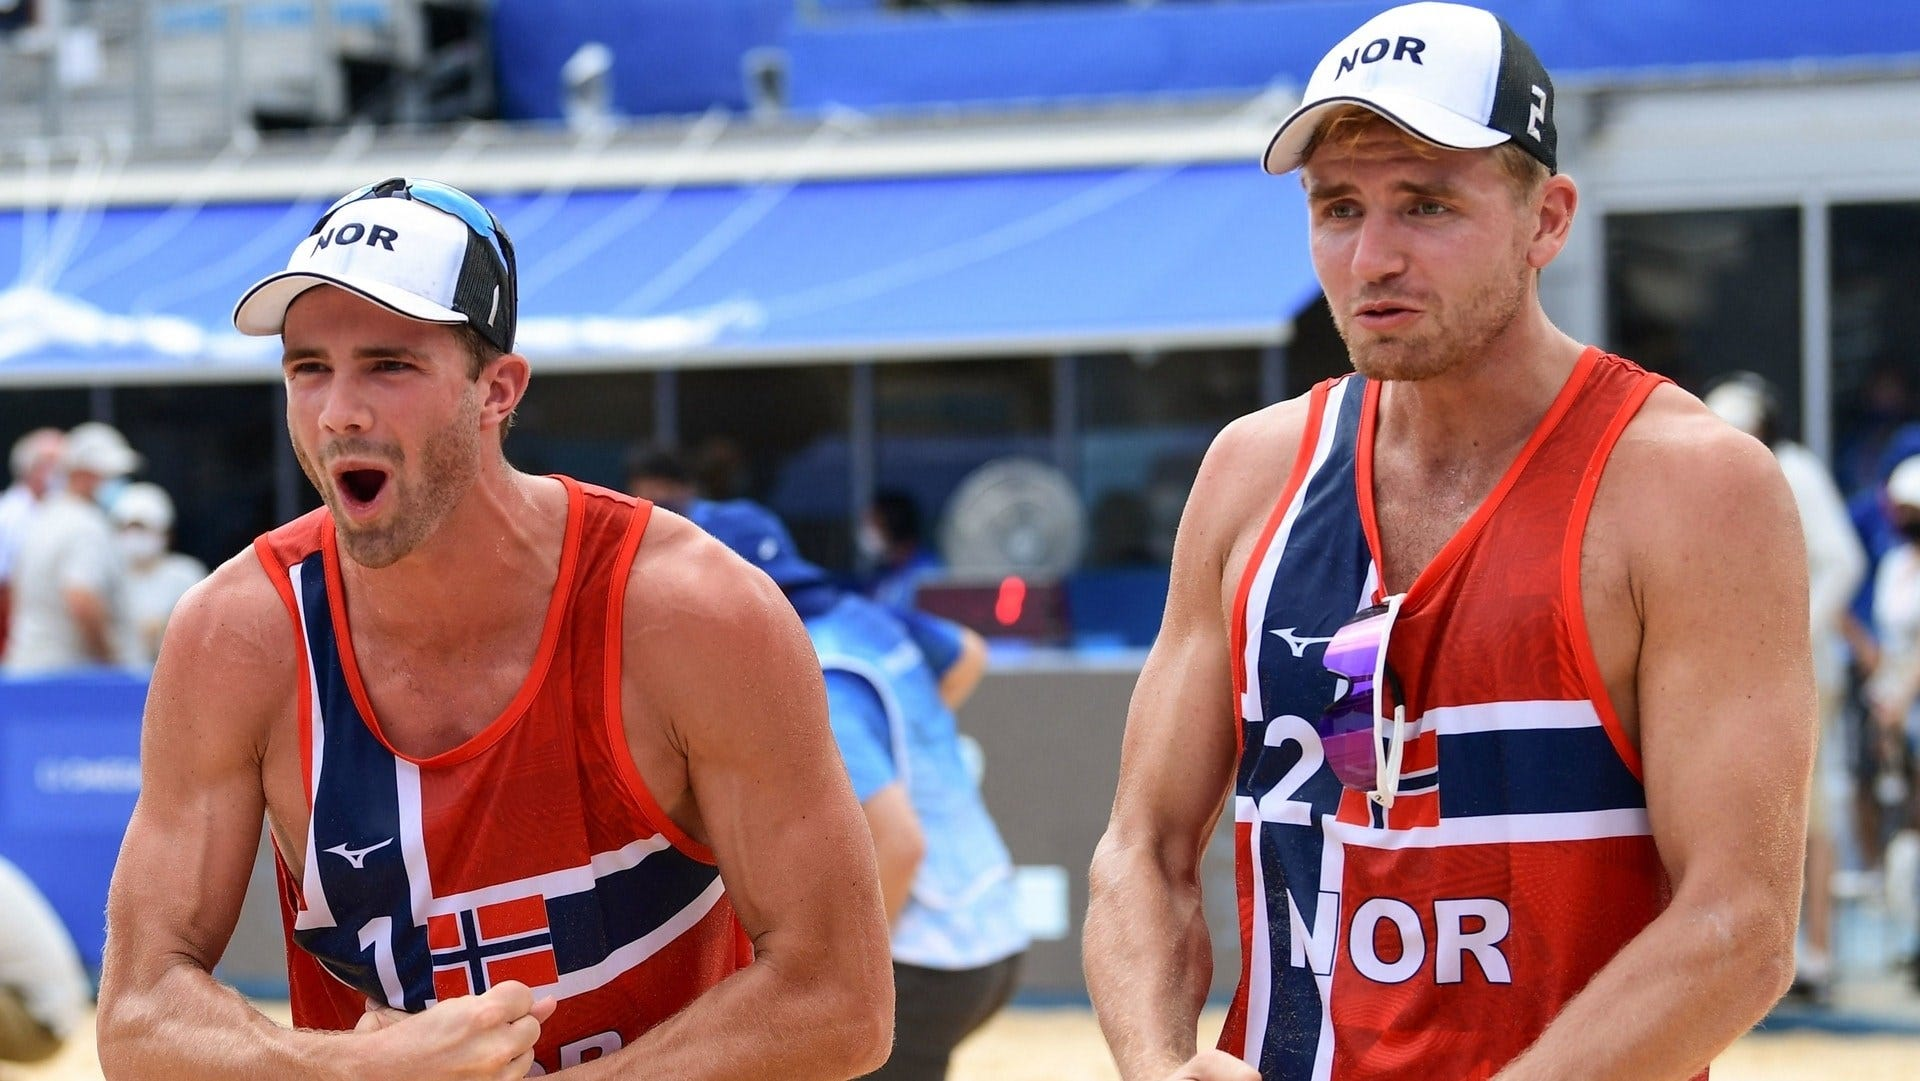 Tokyo Olympics: Christian Sorum and Norway's Anders Mol win men's beach volleyball gold